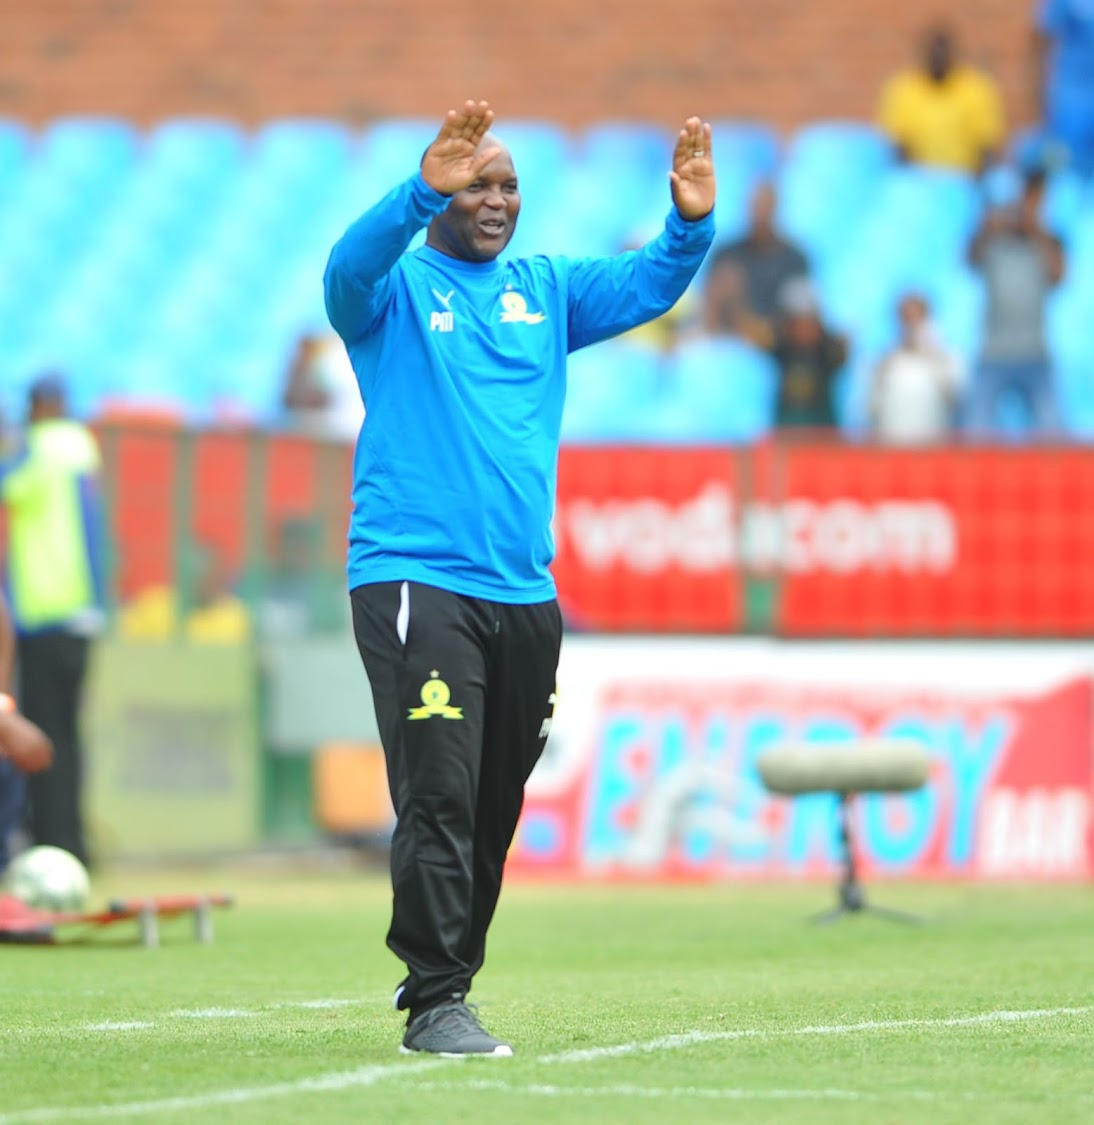 Mamelodi Sundowns coach Pitso Mosimane celebrates during his team's 4-0 Caf Champions League romp over Libyan side Al Ahli Benghazi at Loftus on December 22 2018.